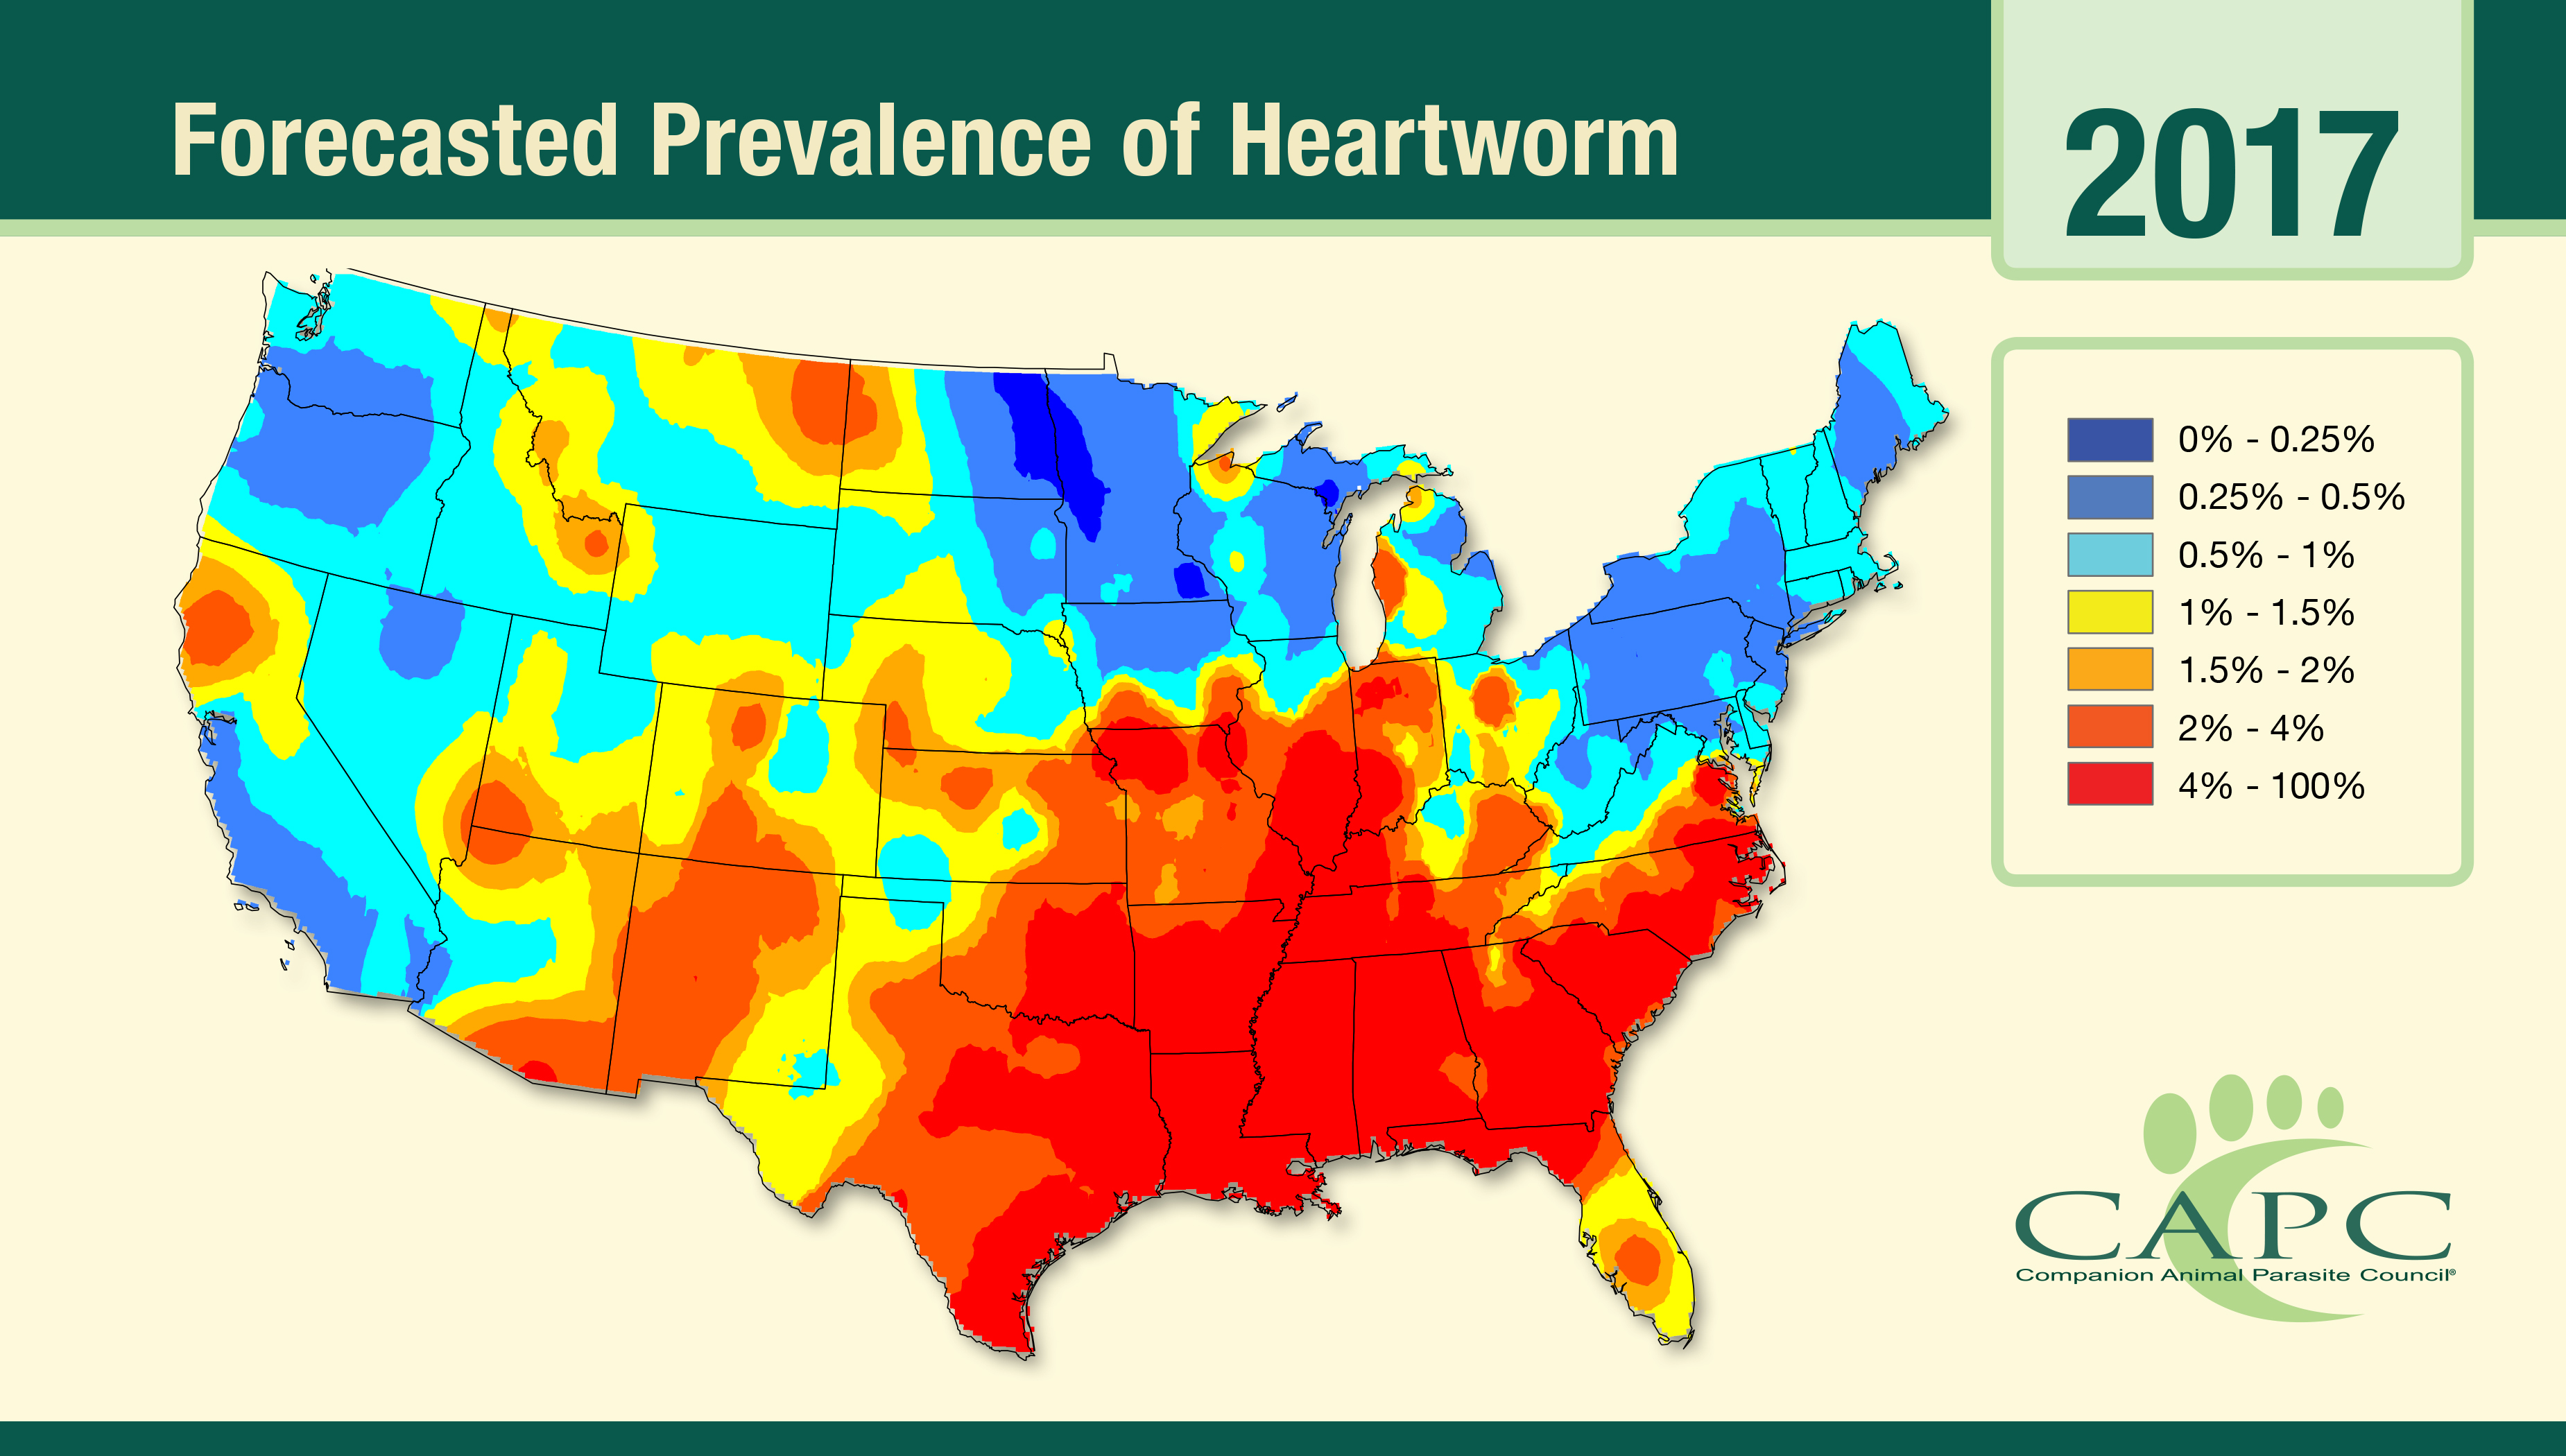 CAPC Forecasts 2017 To Be A Hotbed For Heartworm